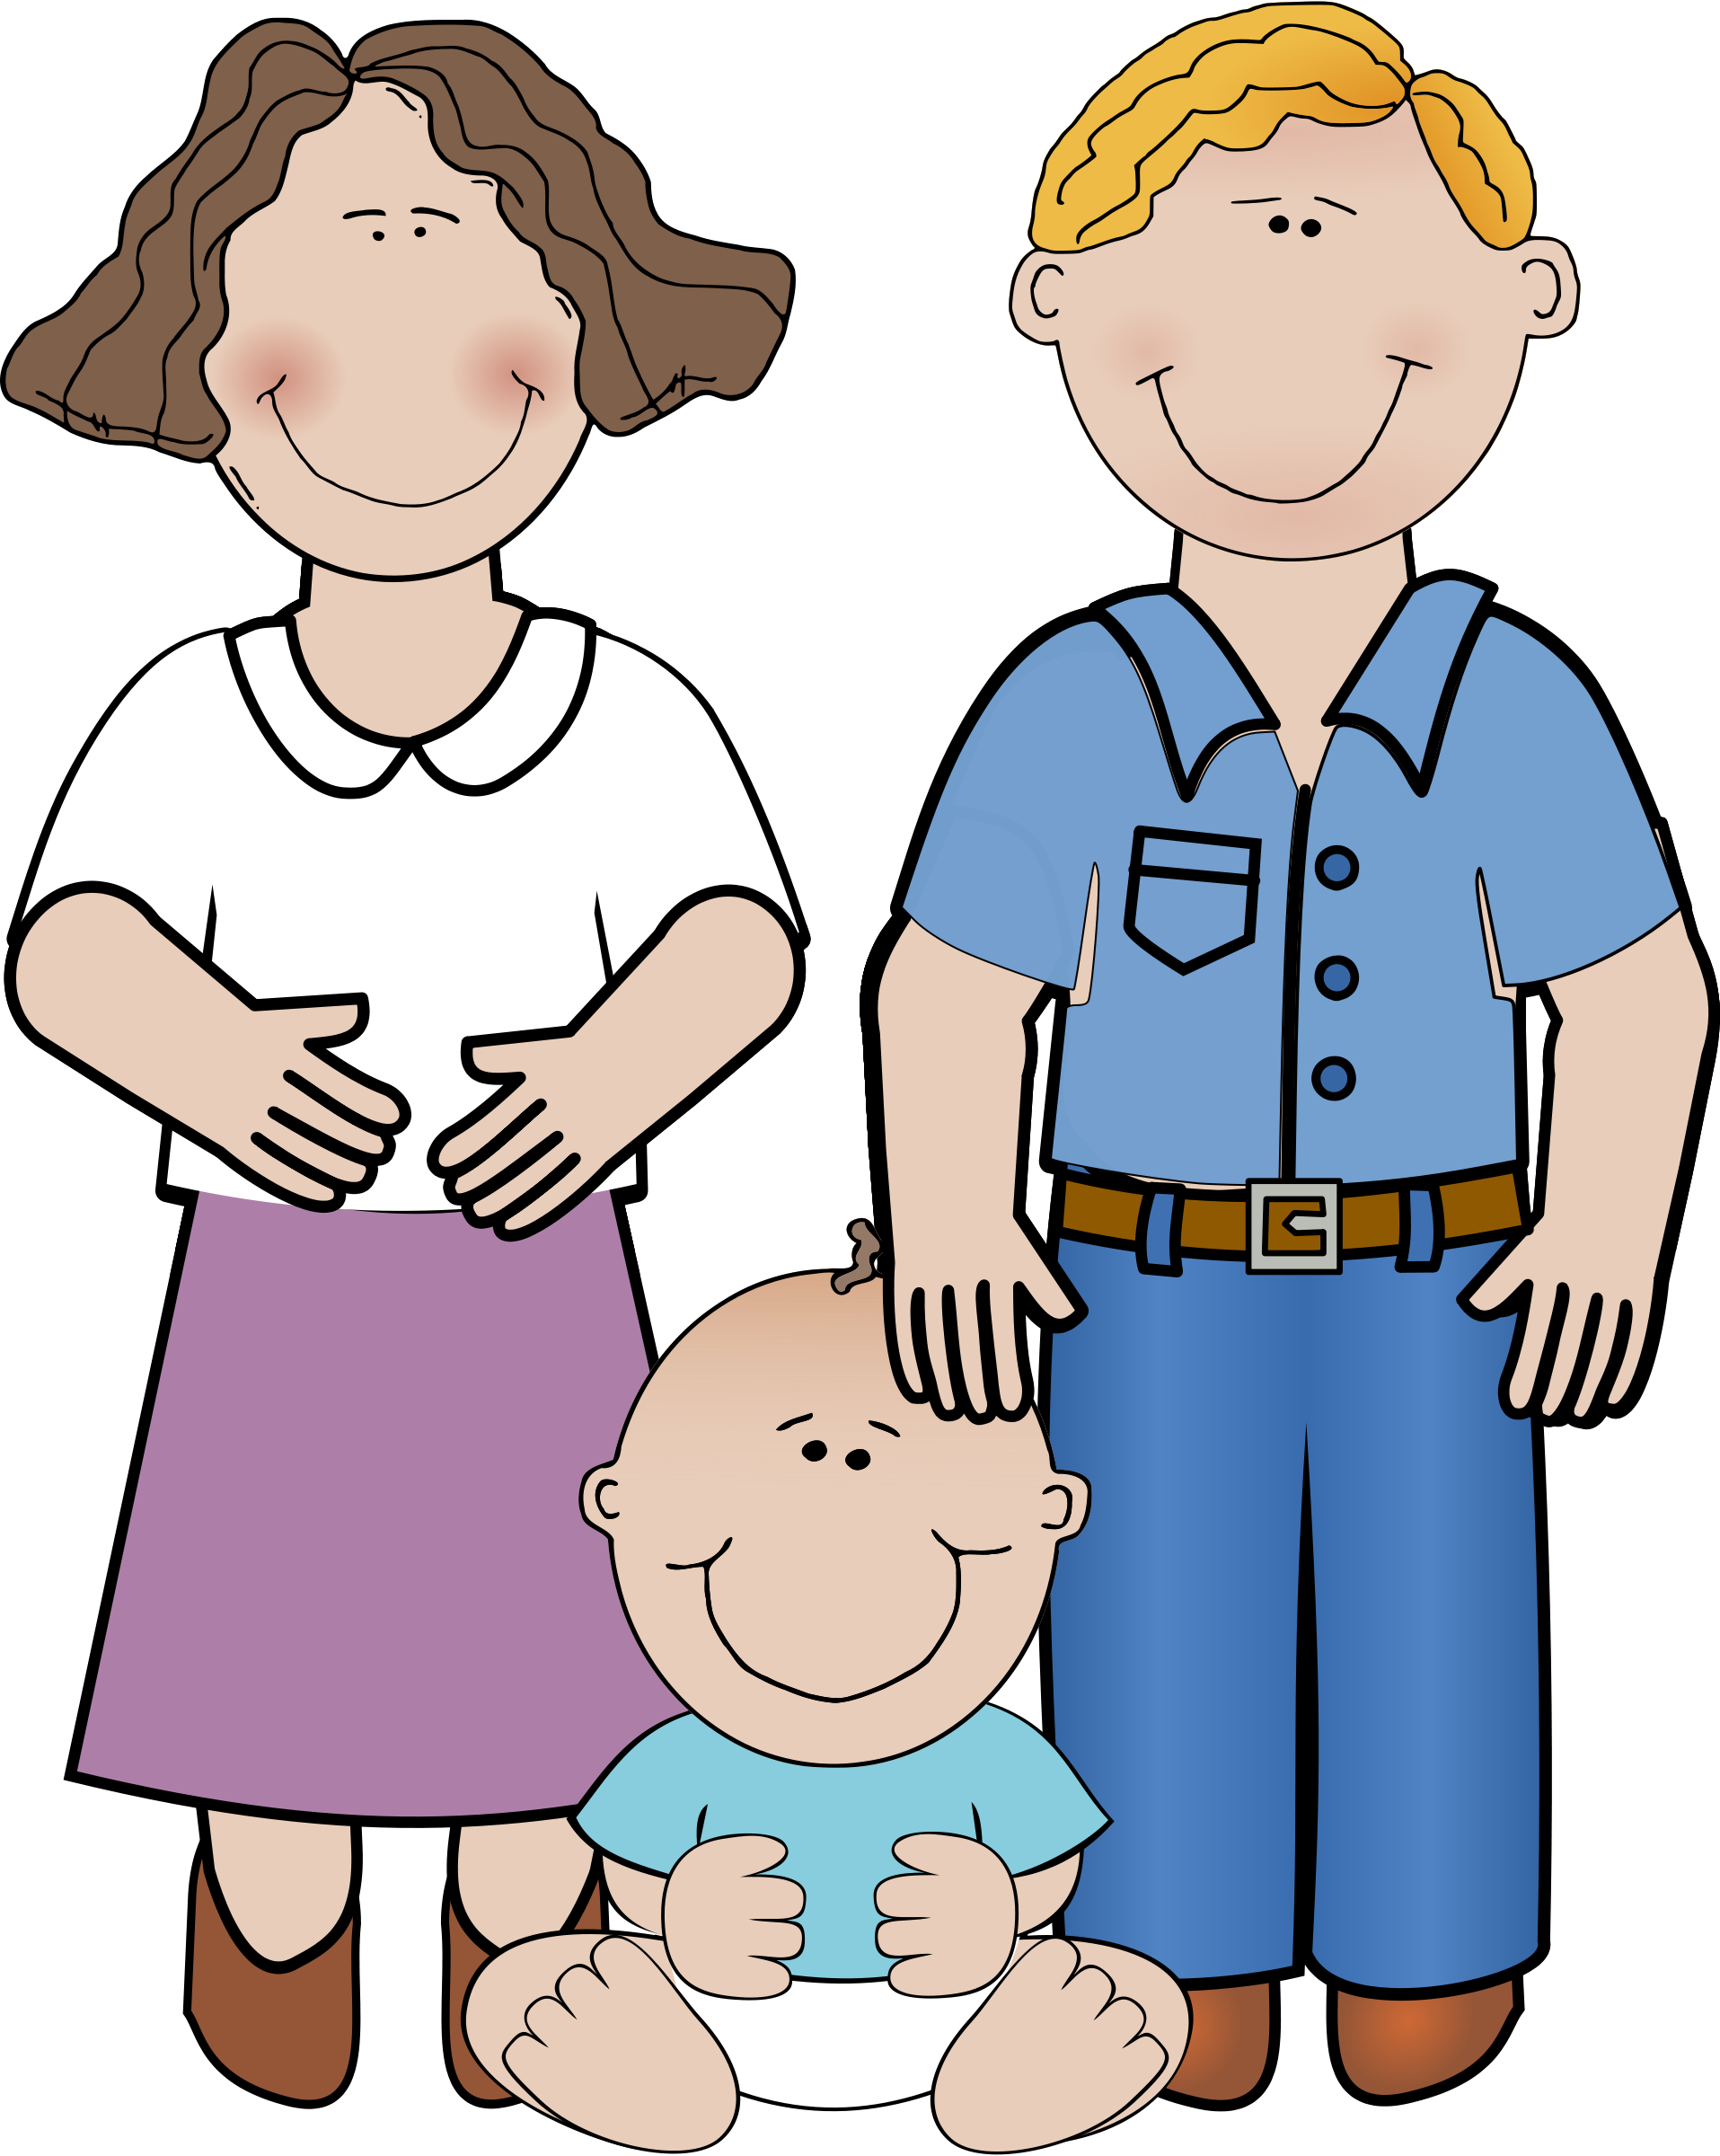 Clipart ear listen to mom and dad, Clipart ear listen to mom.